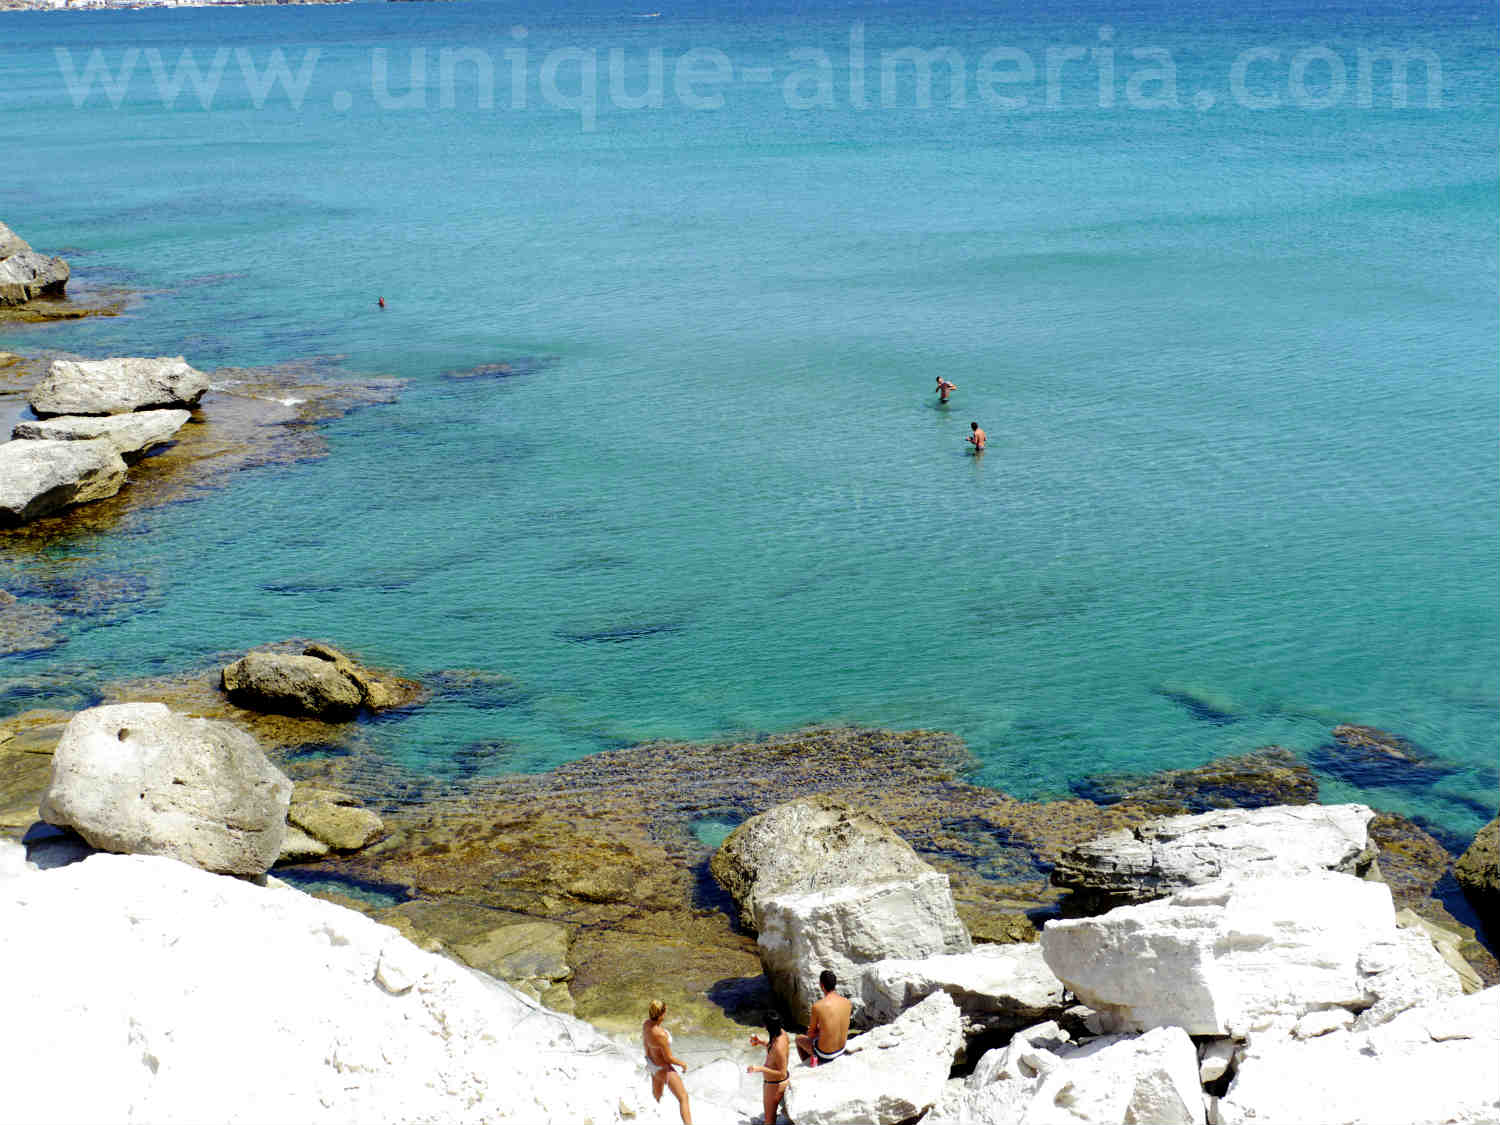 Beach landscape at Playa Embarcadero, Cabo de Gata Natural Park (Almeria, Spain)